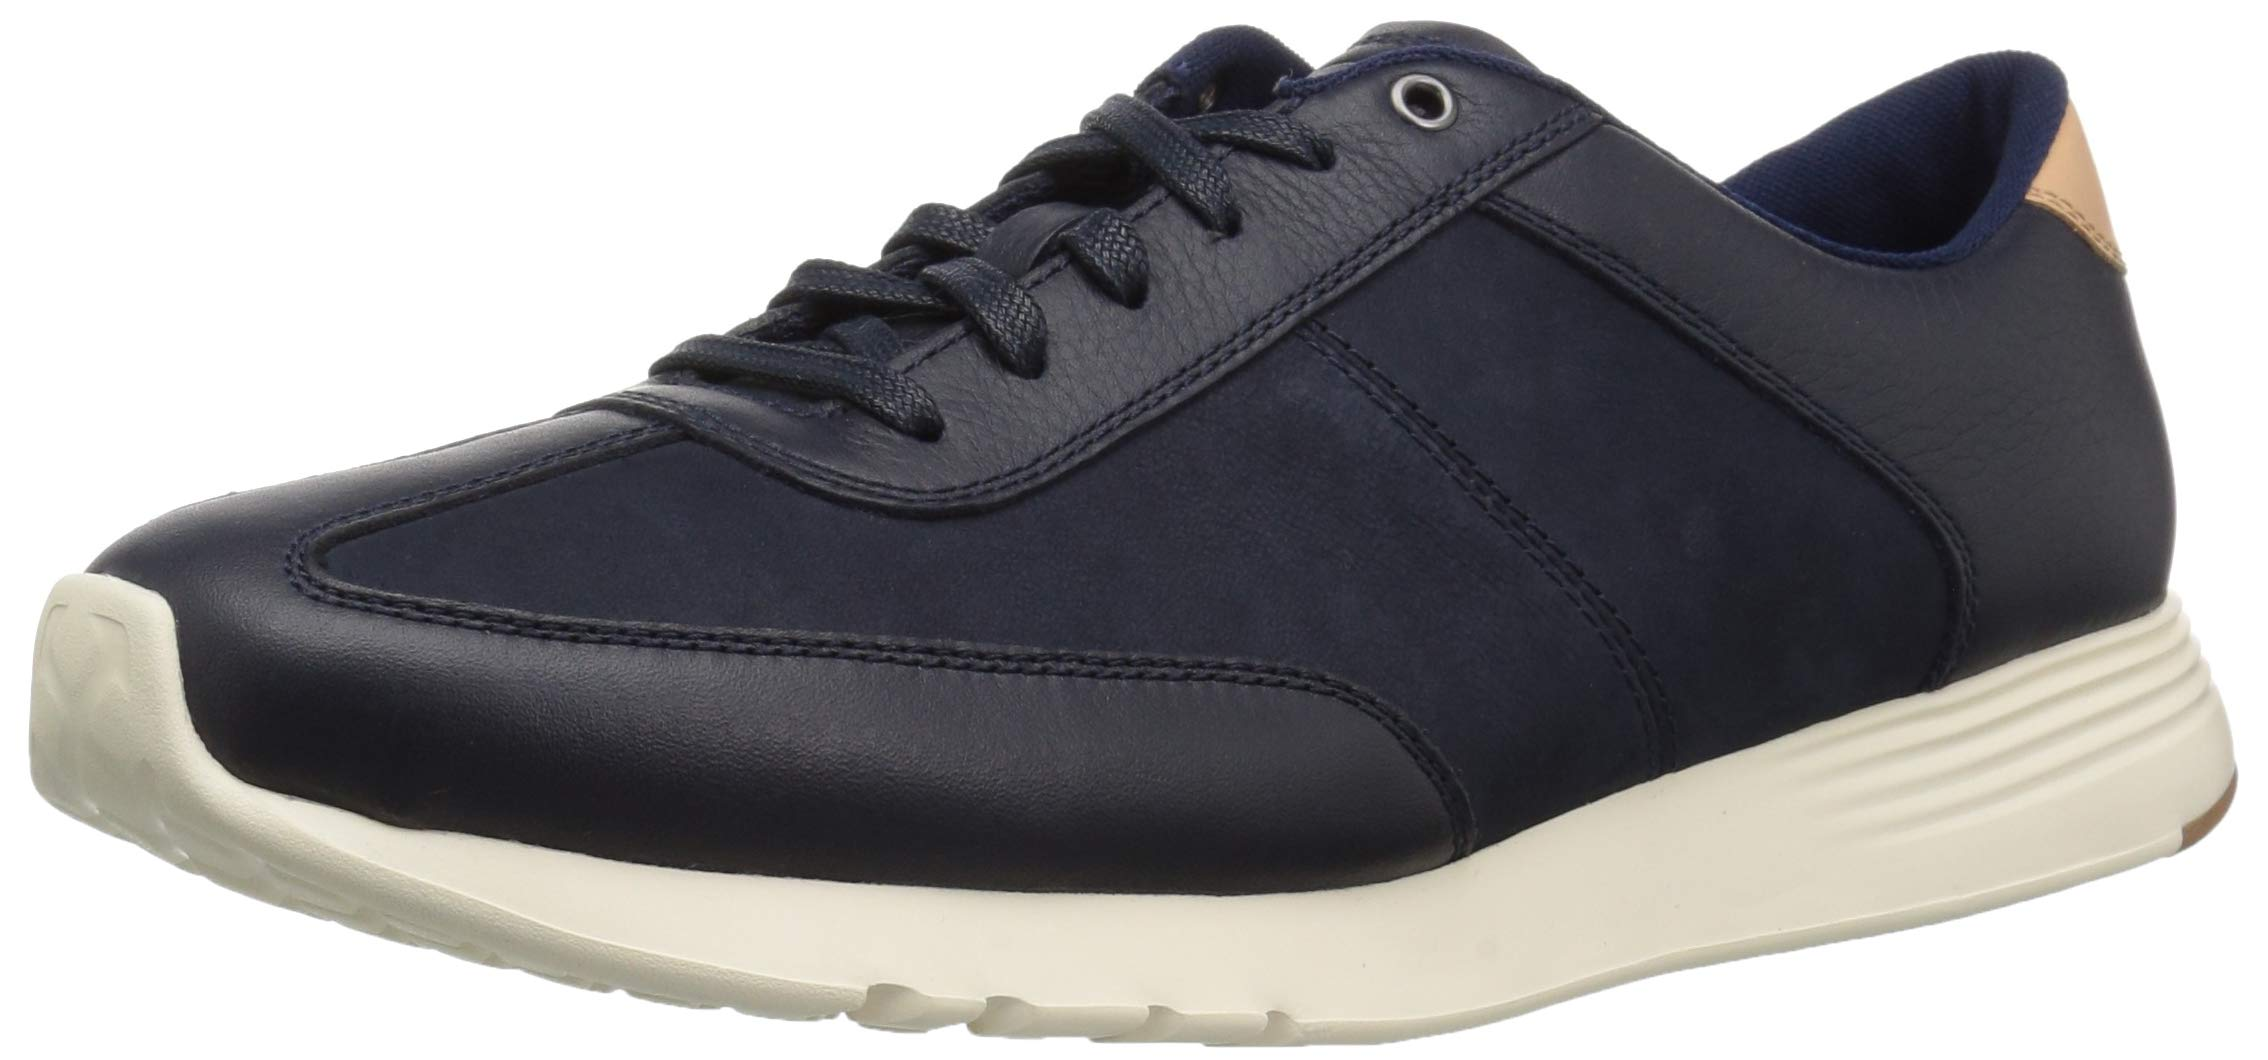 Cole Haan Men's Grand Crosscourt Runner Sneaker Marine Blue Leather/Nubuck 9.5 M US